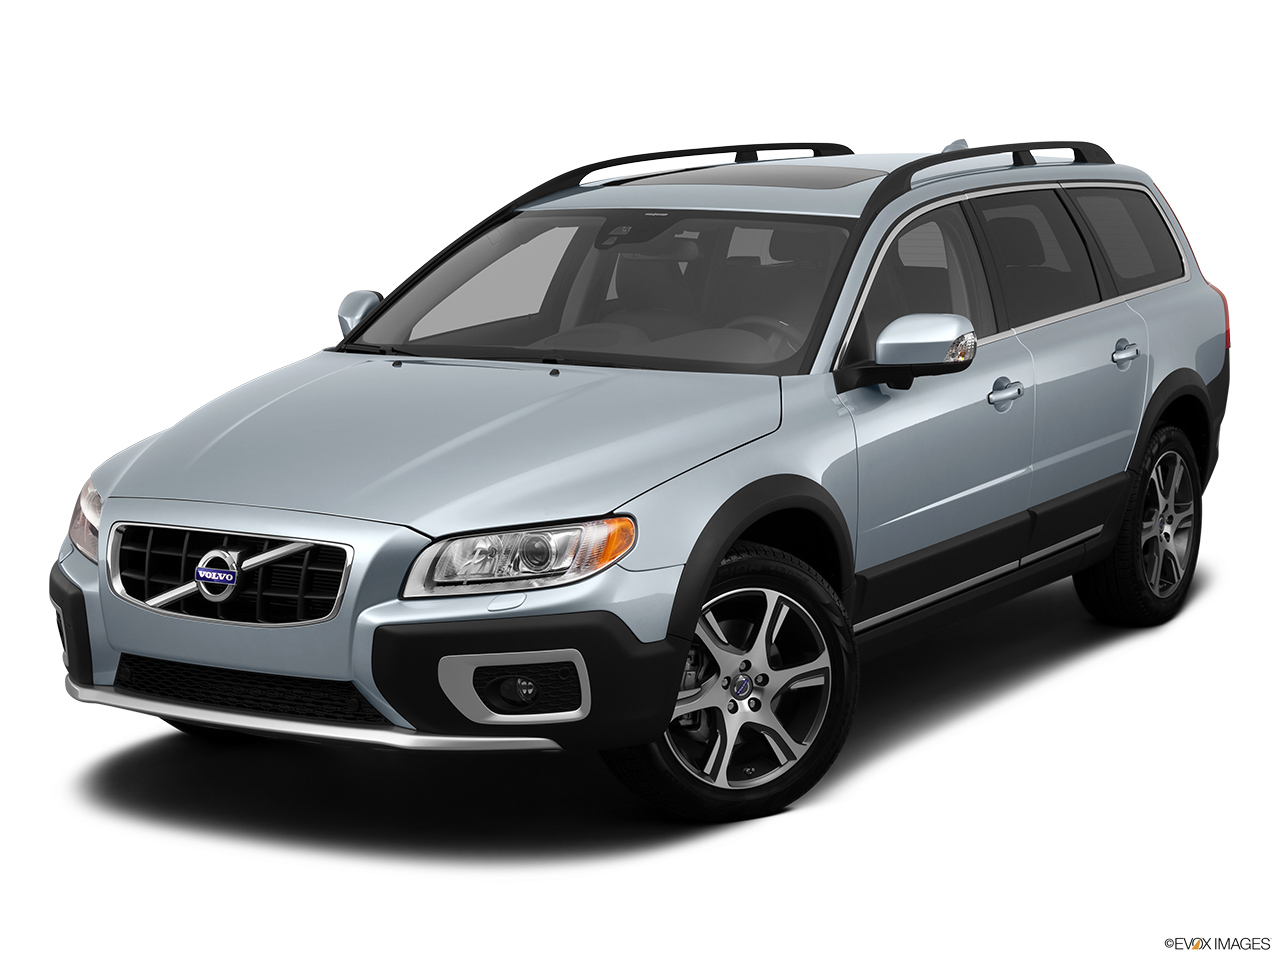 2013 Volvo XC70 T6 AWD Platinum Front angle view.